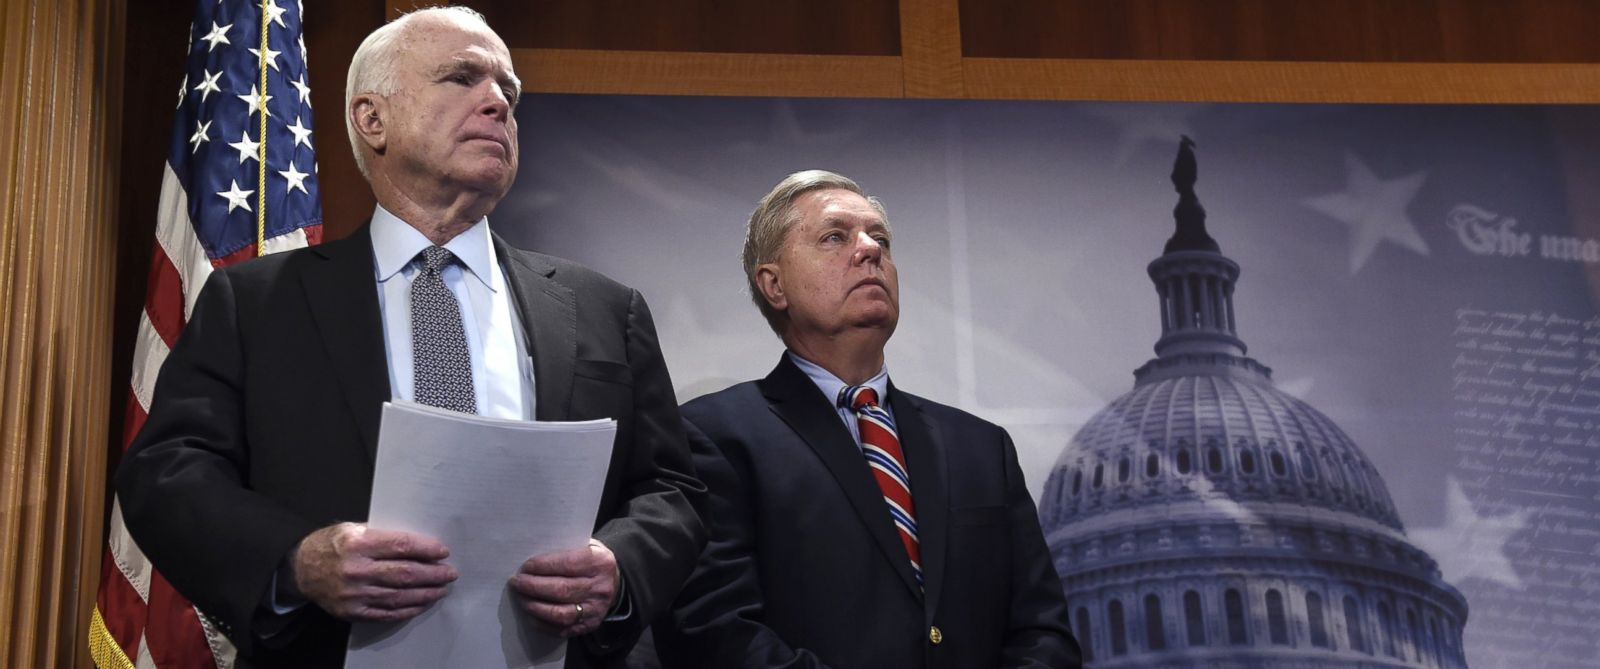 PHOTO: In this Jan. 21, 2016 file photo, Sen. John McCain and Sen. Lindsey Graham wait to speak during a news conference on Capitol Hill in Washington.